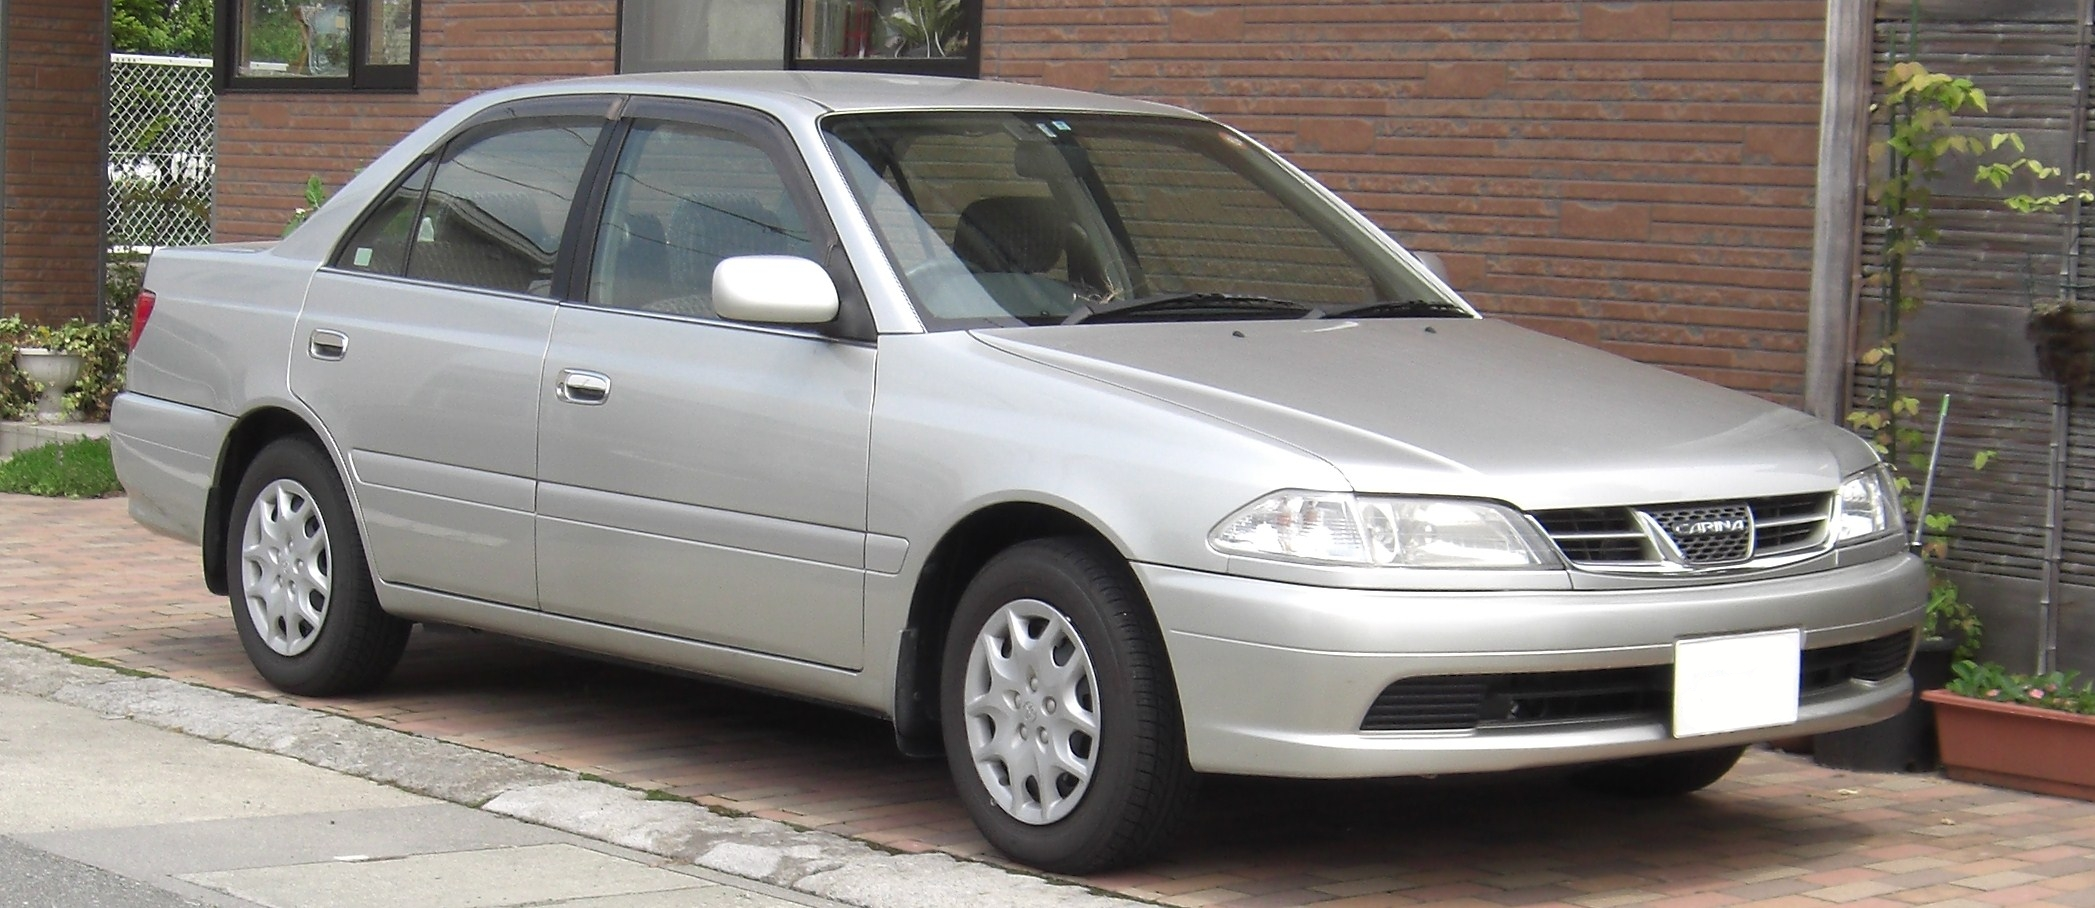 Toyota Carina Photos Informations Articles Tazz Wiring Diagram Download 10